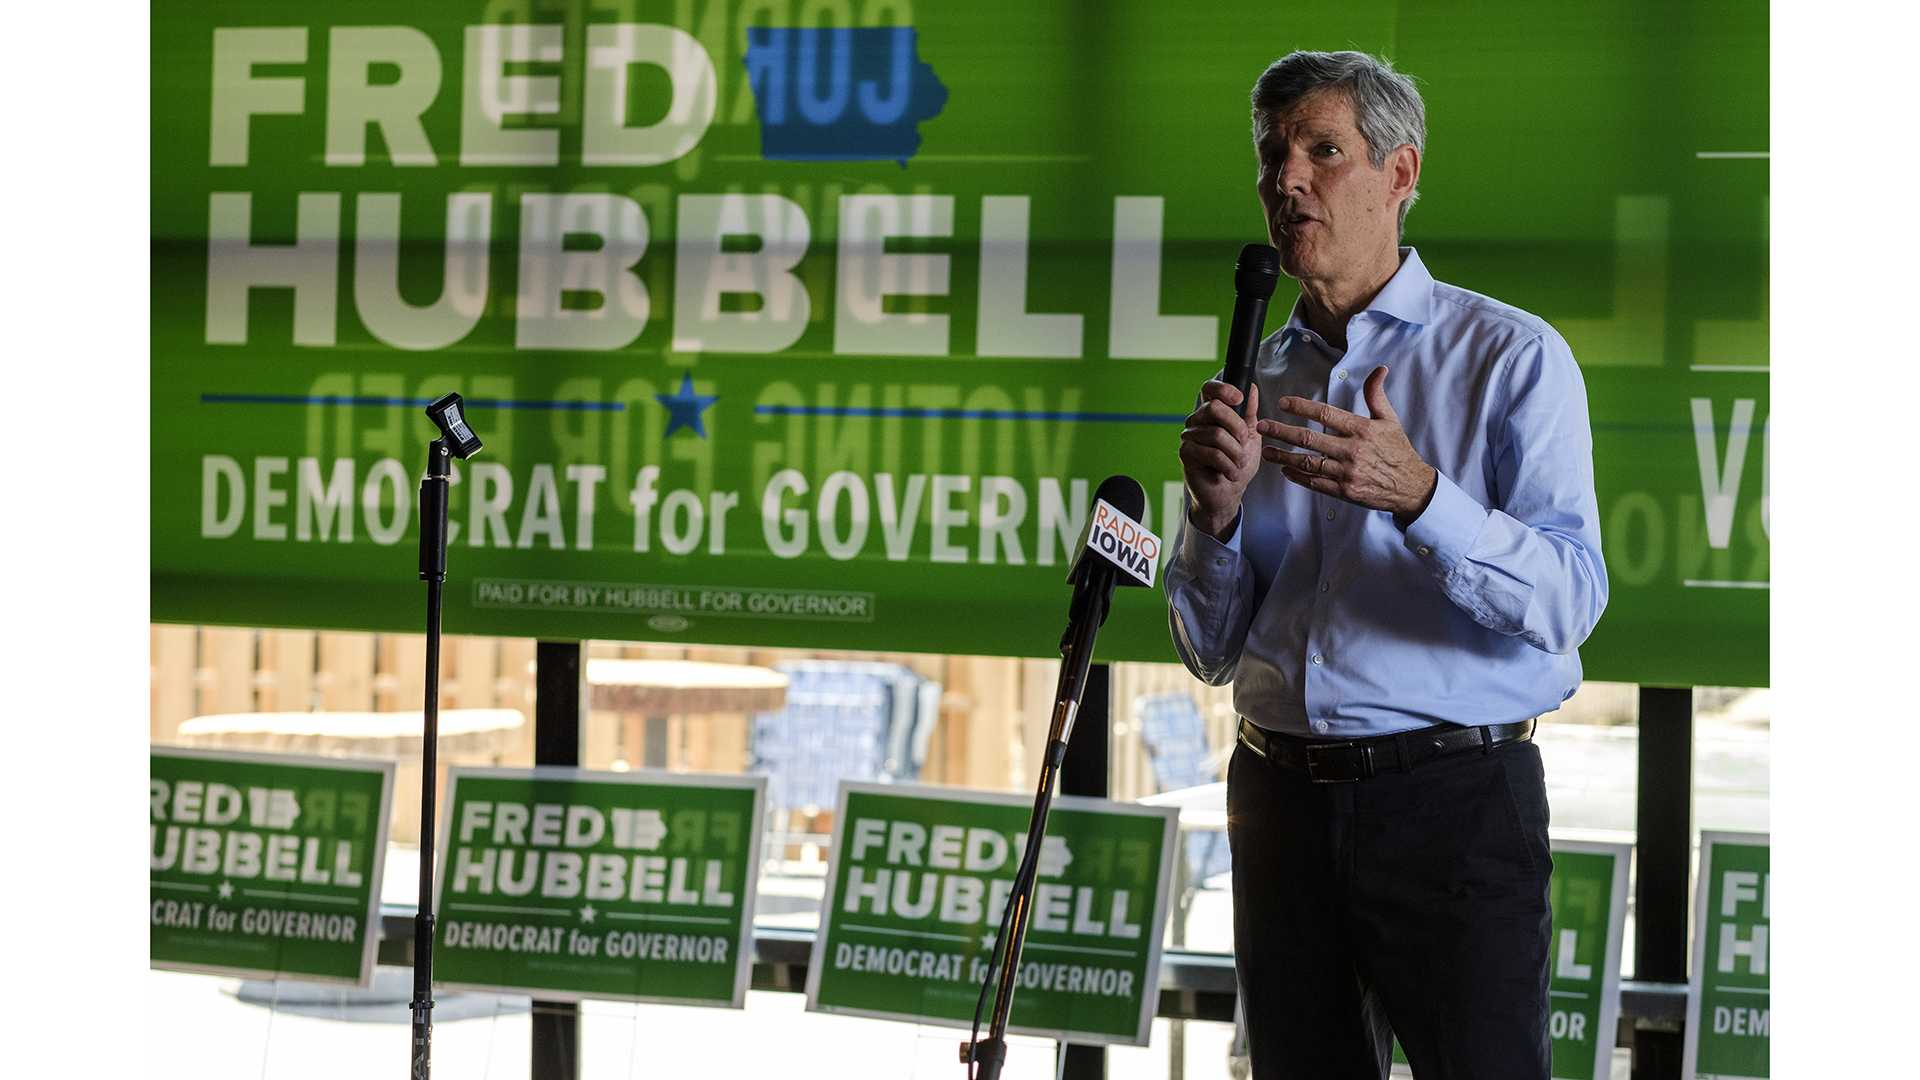 Iowa Democratic nominee for governor Fred Hubbell speaks at a campaign event at Big Grove Brewery in Iowa City on Sunday, June 3. Hubbell will face off against incumbent Gov. Kim Reynolds in November. (Nick Rohlman/The Daily Iowan)